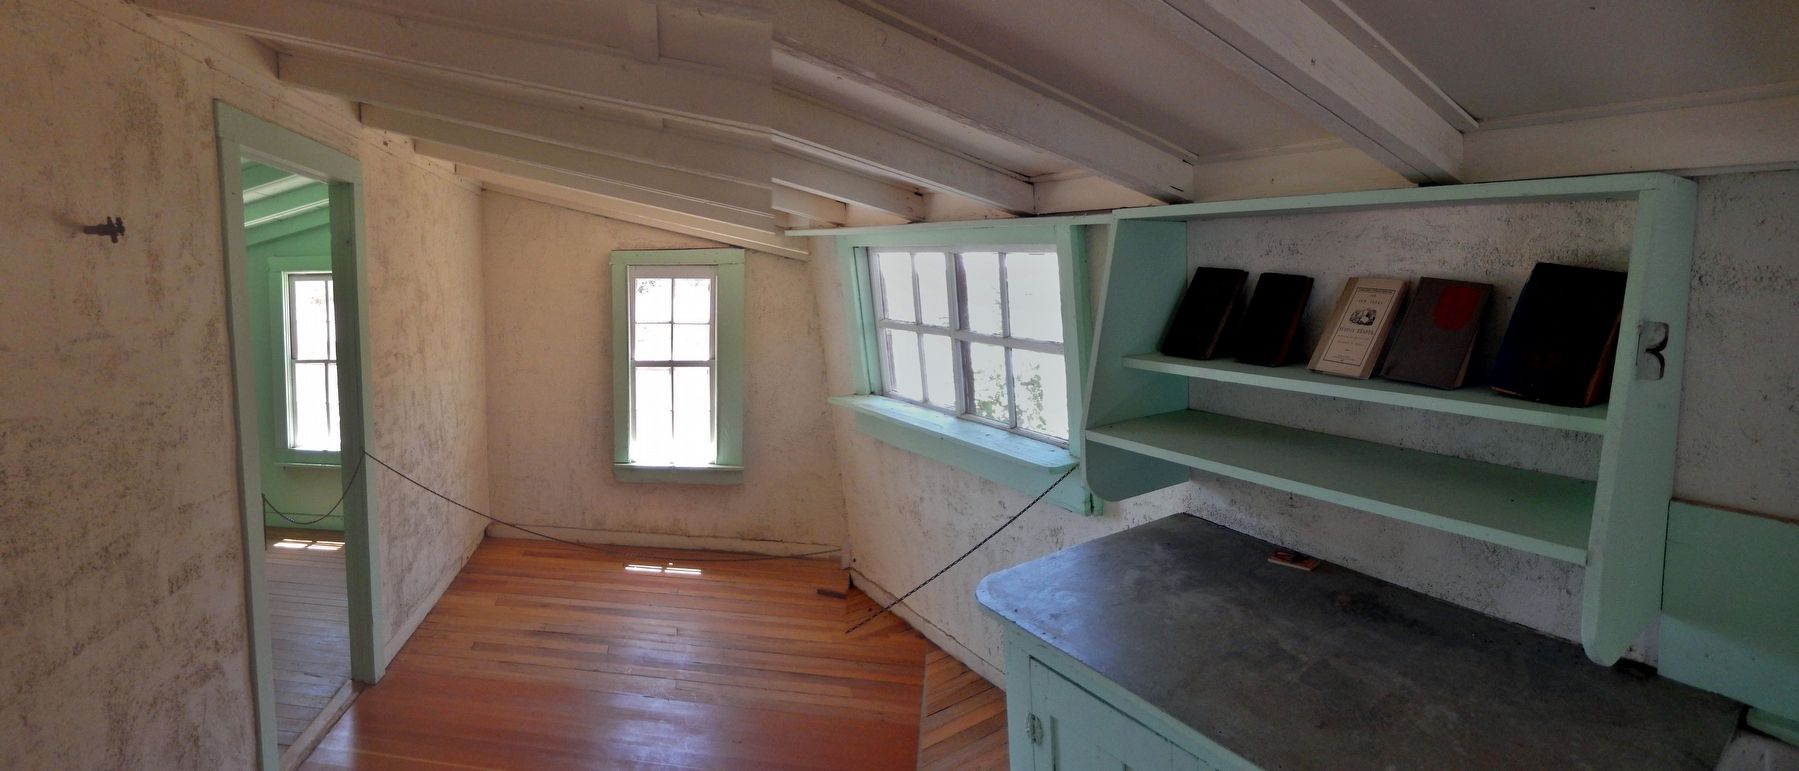 Frijole School House (<i>interior view</i>) image. Click for full size.